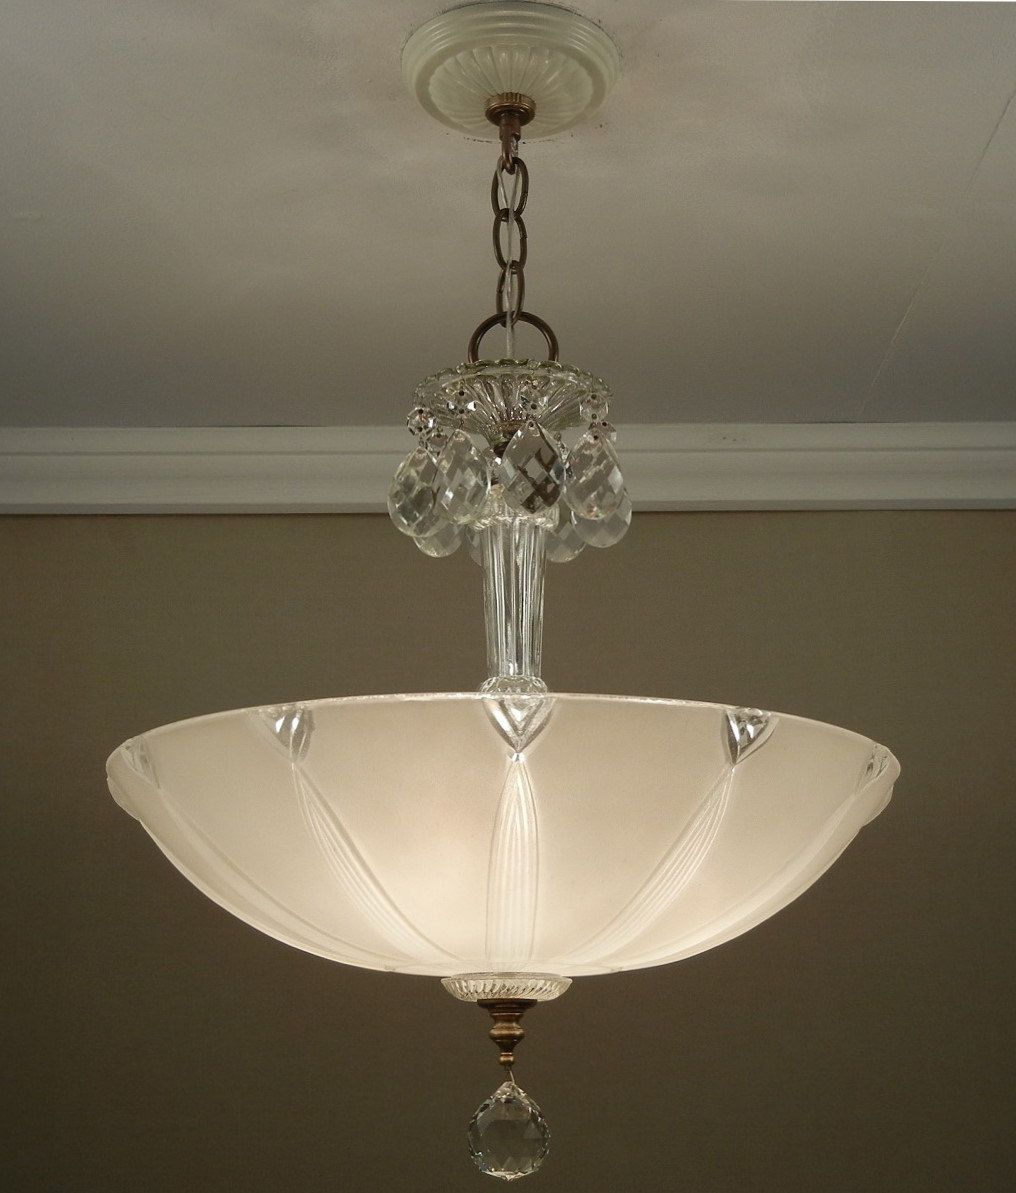 Large antique 1920s vintage victorian deco ivory satin glass ceiling large antique 1920s vintage victorian deco ivory satin glass ceiling light chandelier 16 rewired 16 arubaitofo Images